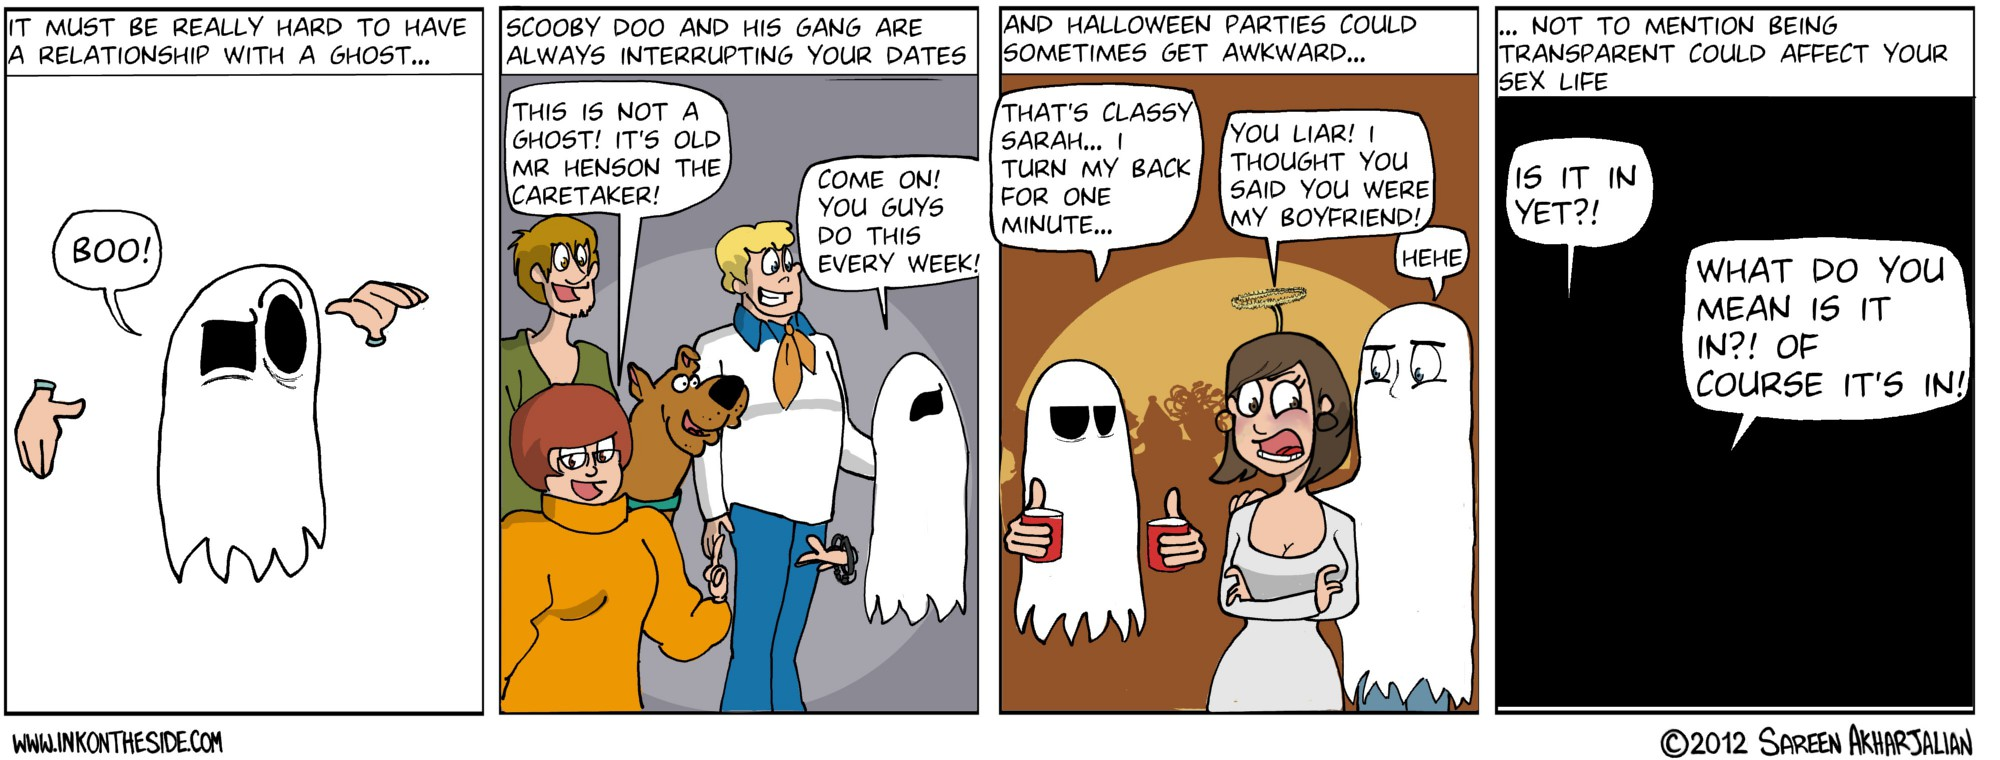 Never Date A Ghost!